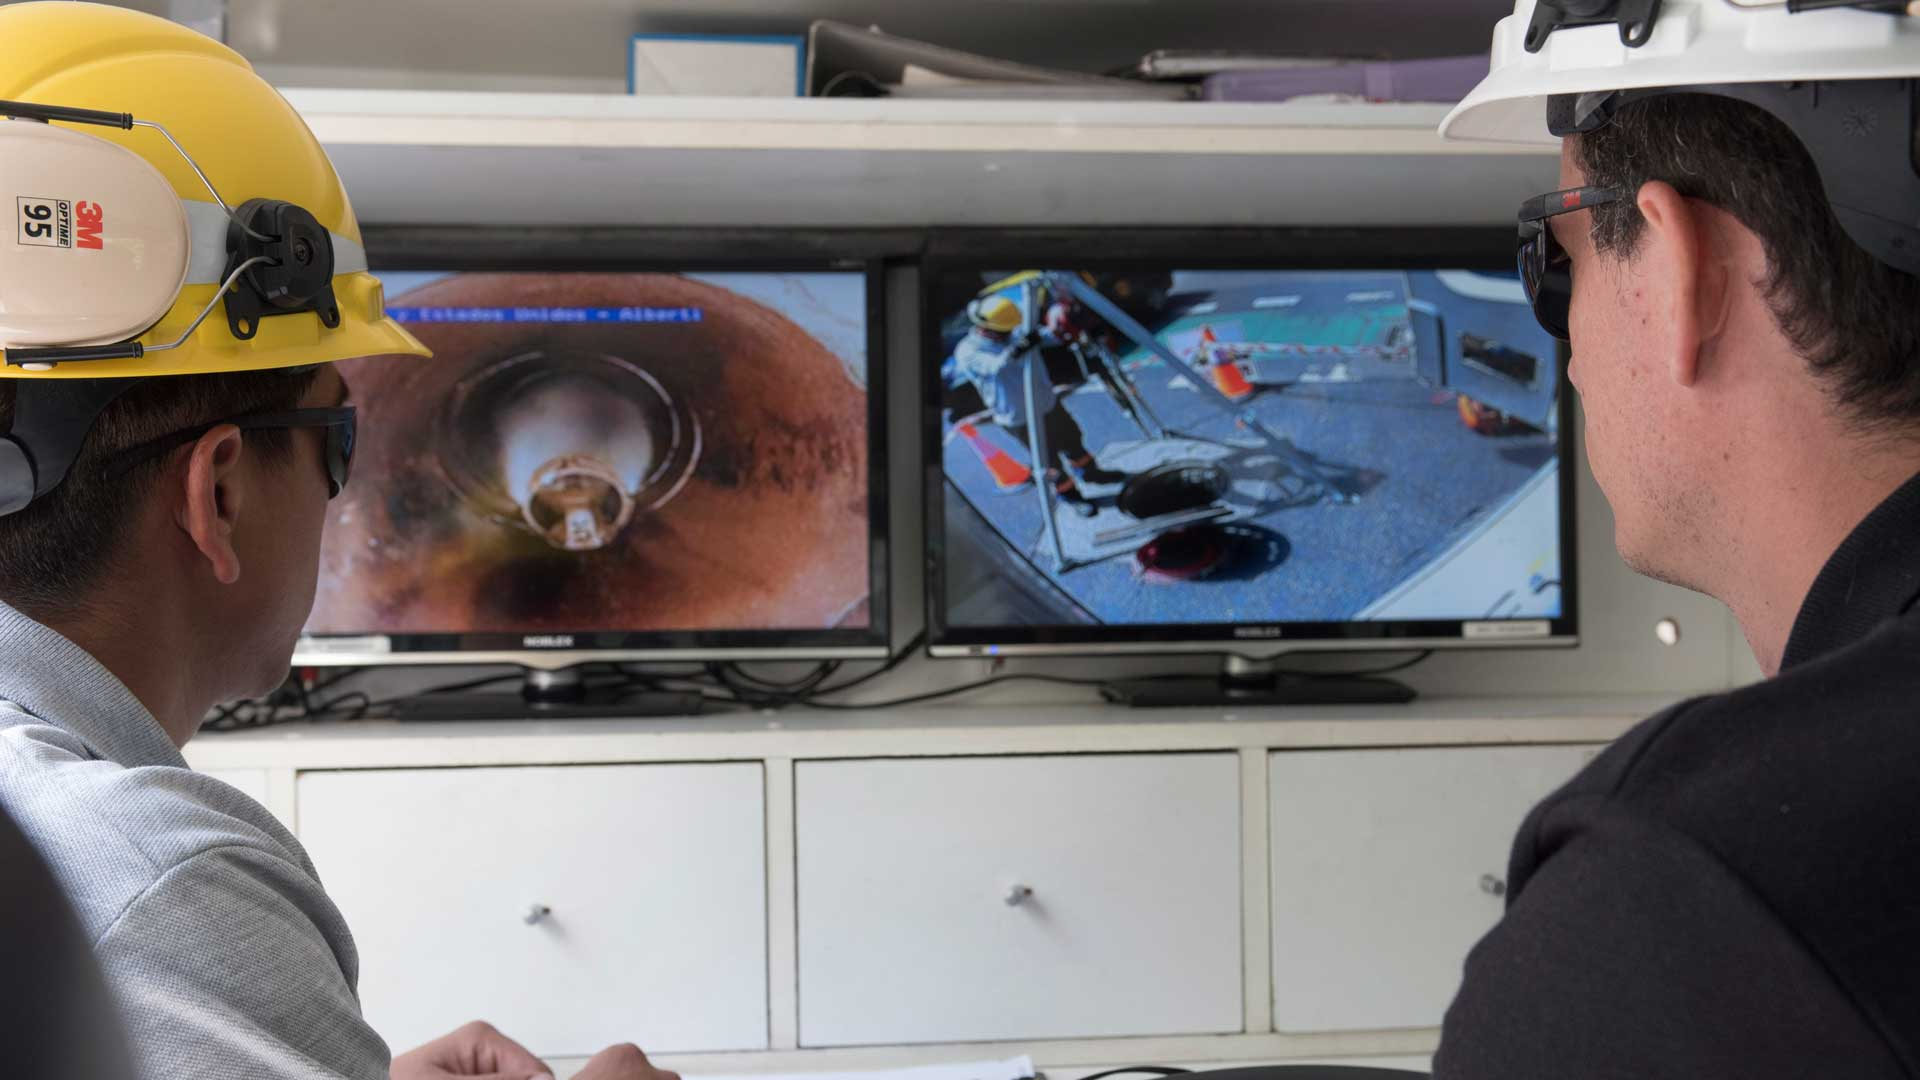 Video Inspection 360